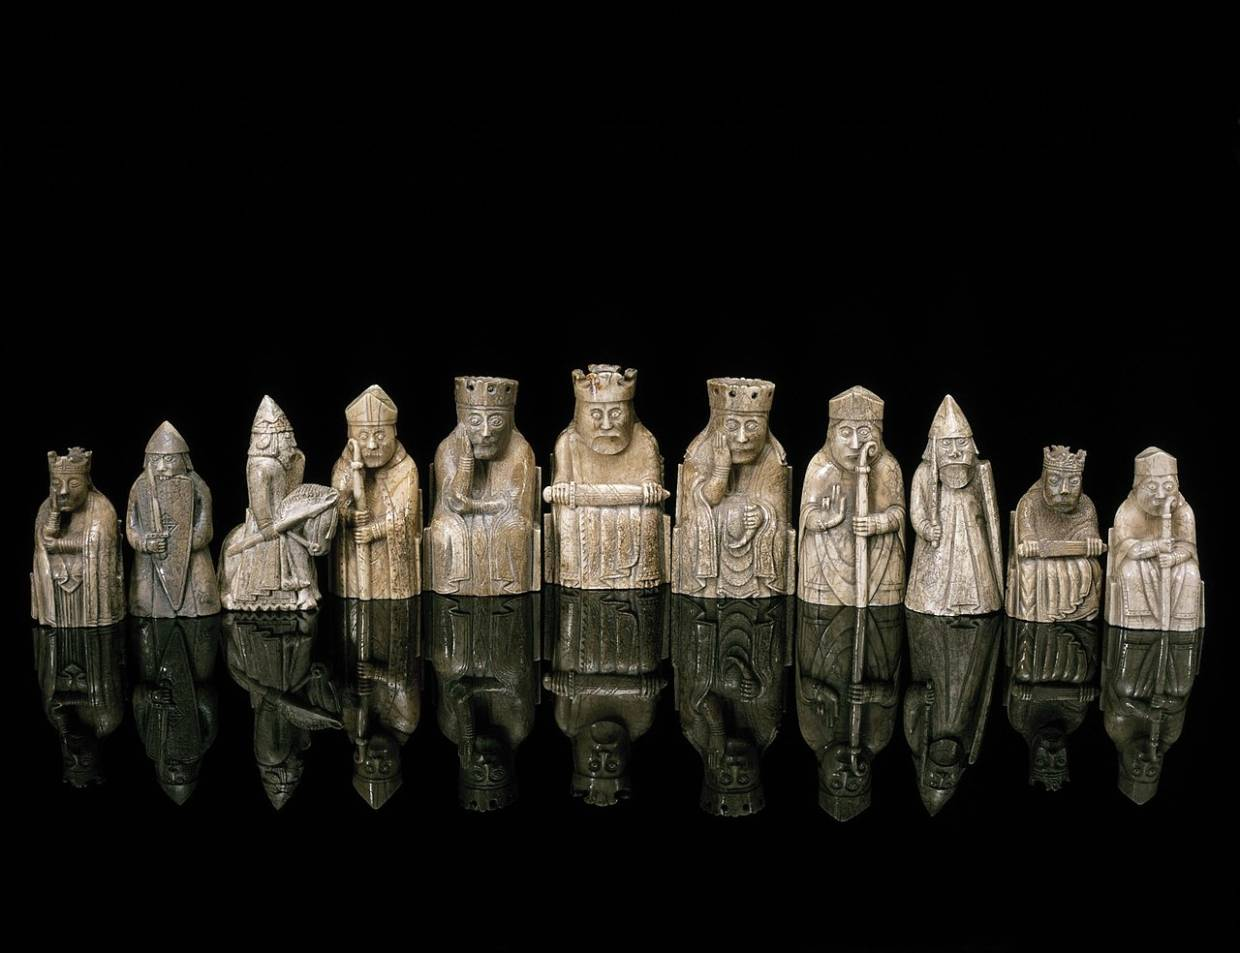 Some of the original Lewis chessmen, which can be seen at the National Museum of Scotland. Photo: National Museums Scotland